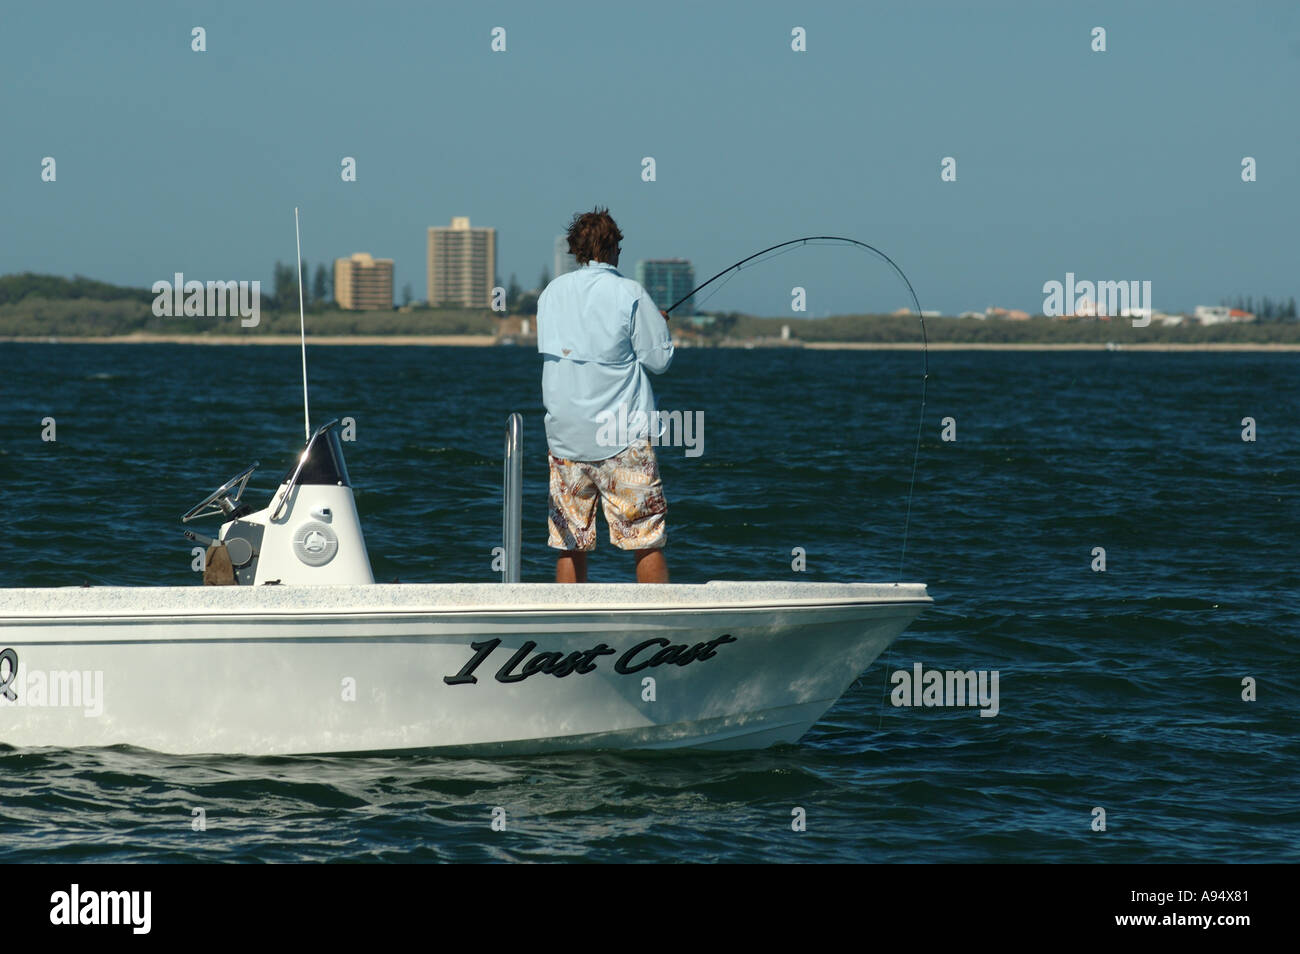 locked up on a tuna on fly fishing rod and reel dsca 3658